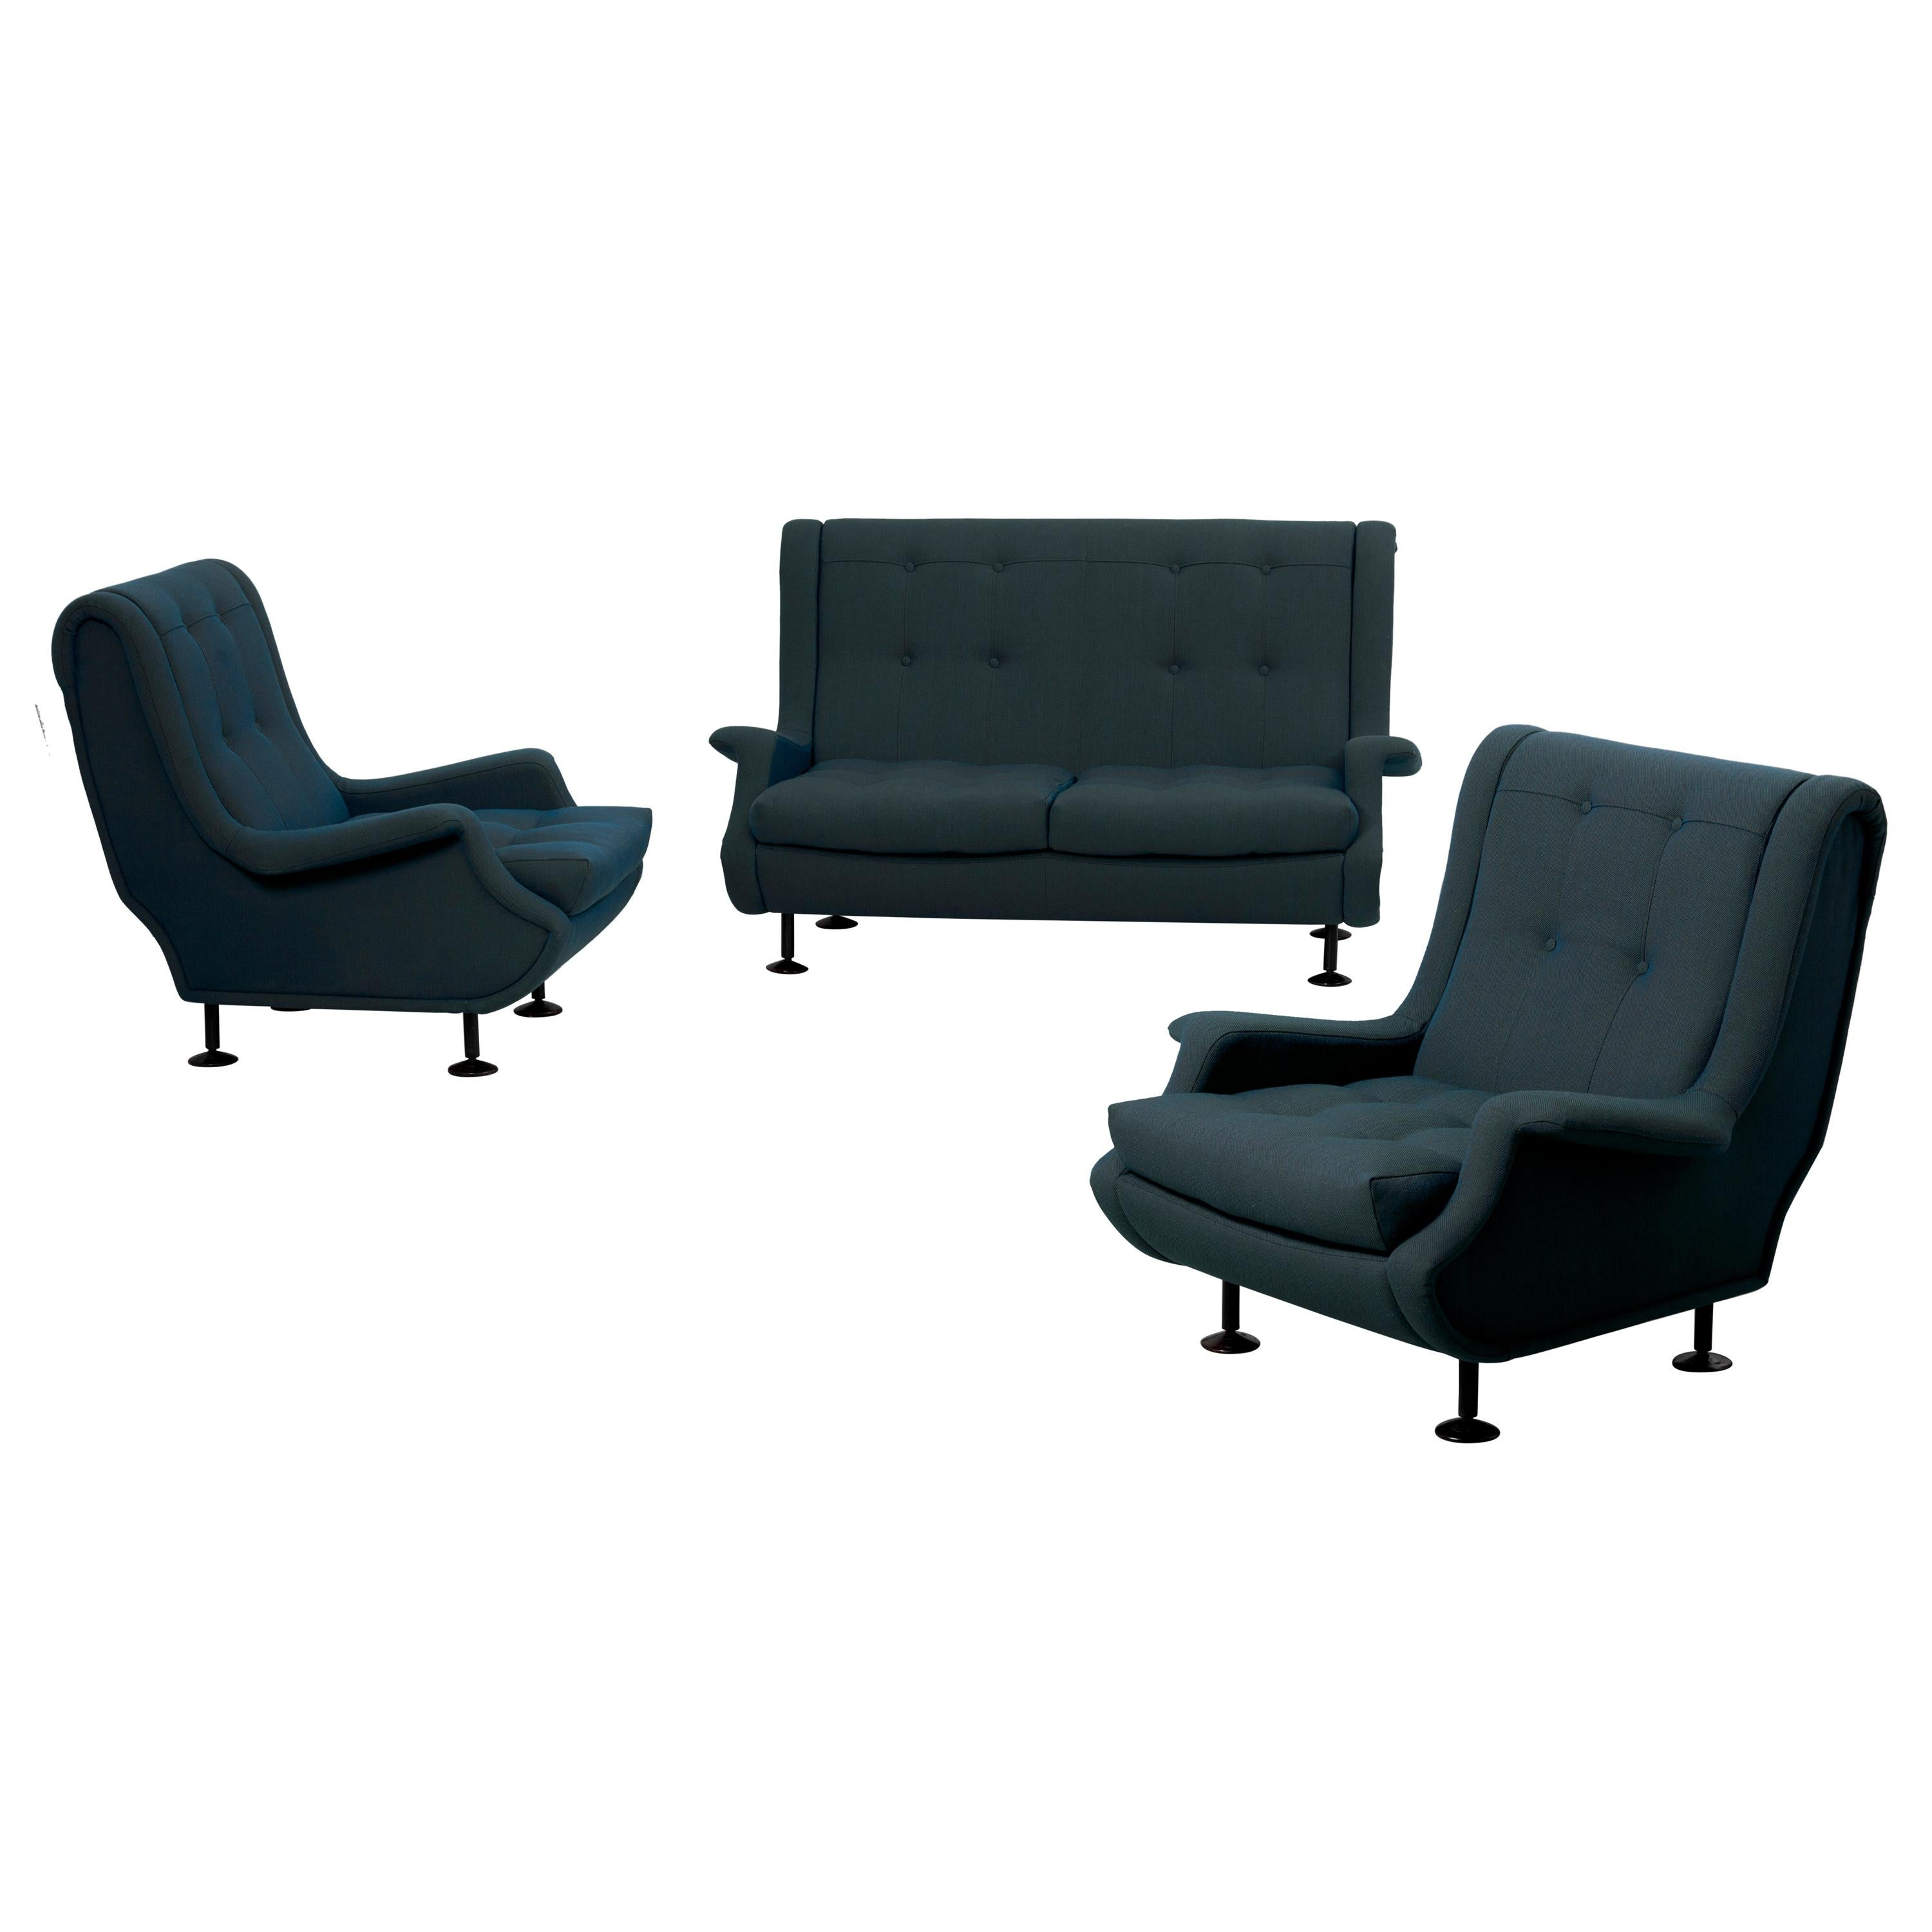 Marco Zanuso Regent Set of Settee and Lounge Chairs for Arflex, Italy, 1960s